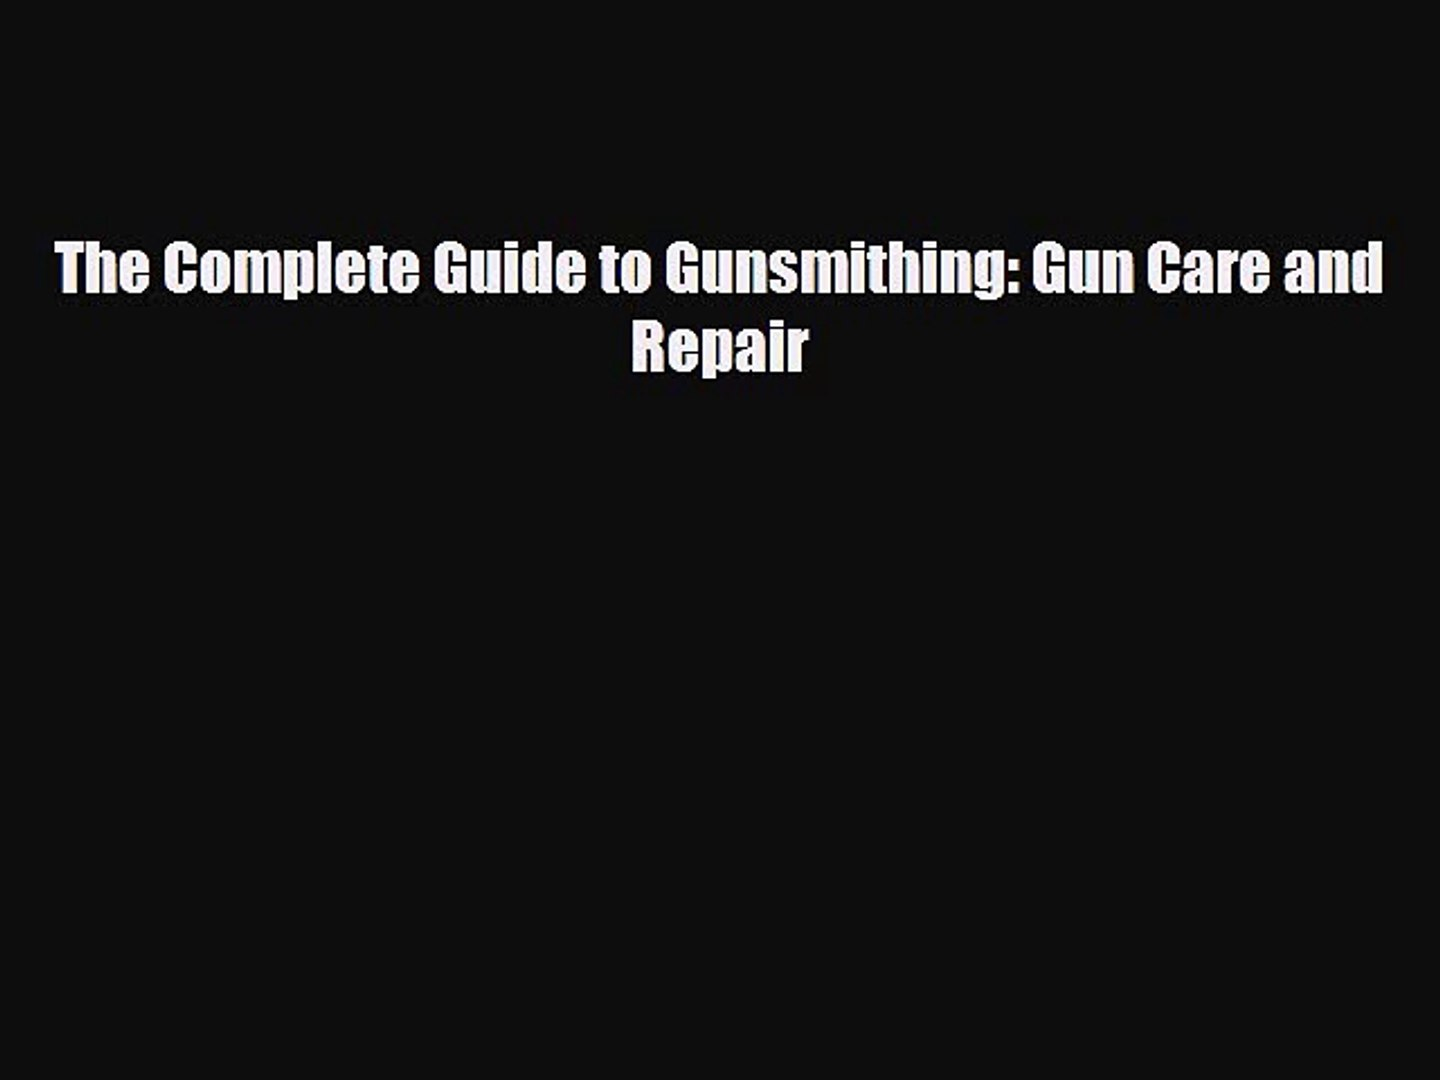 Download The Complete Guide to Gunsmithing: Gun Care and